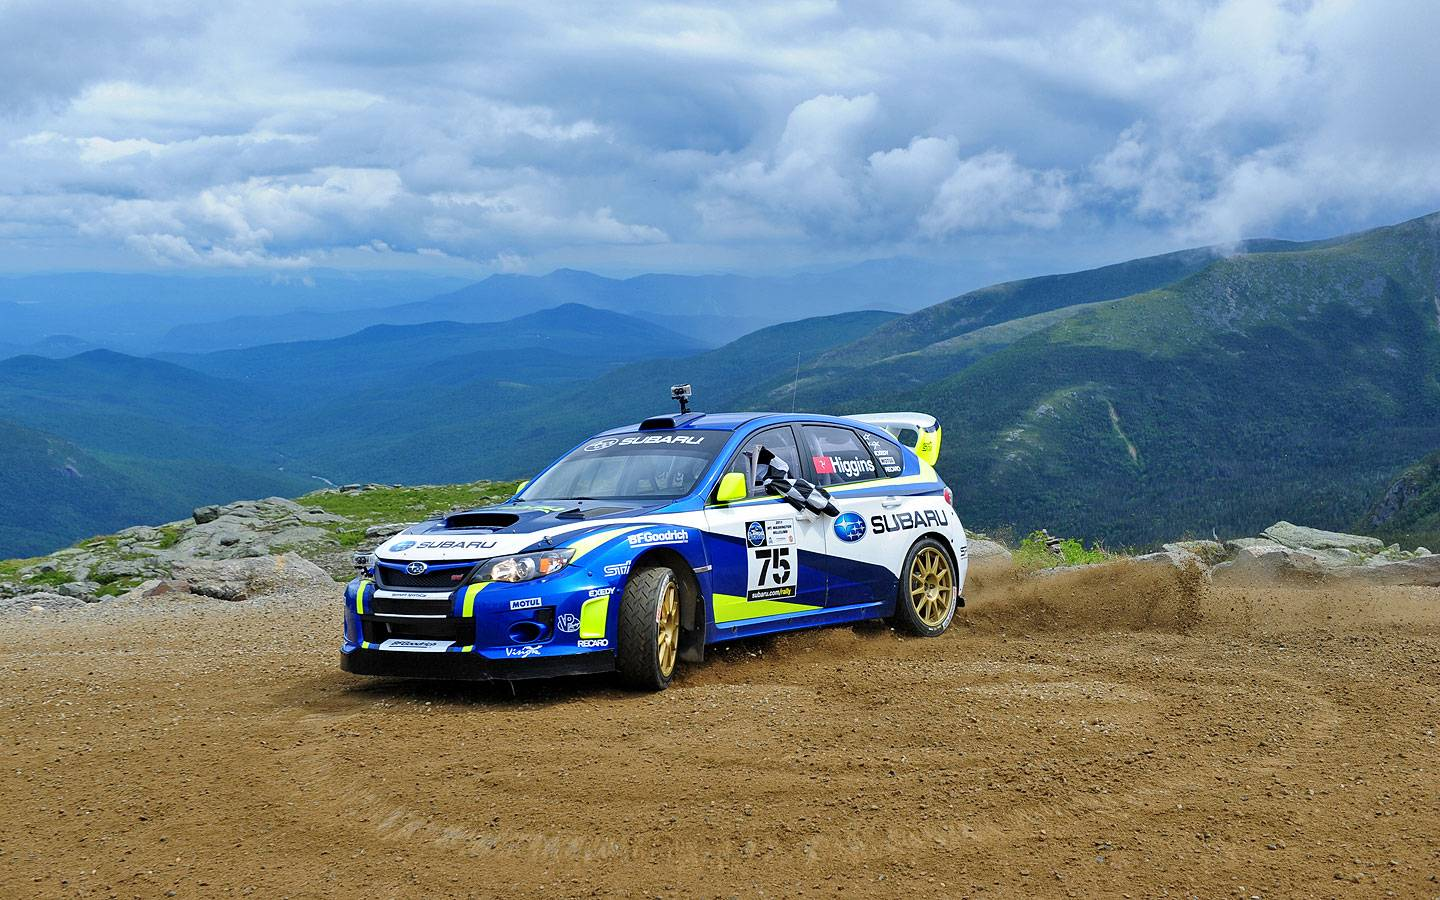 Subaru Rally Team Wallpaper About Subaru Rally Team